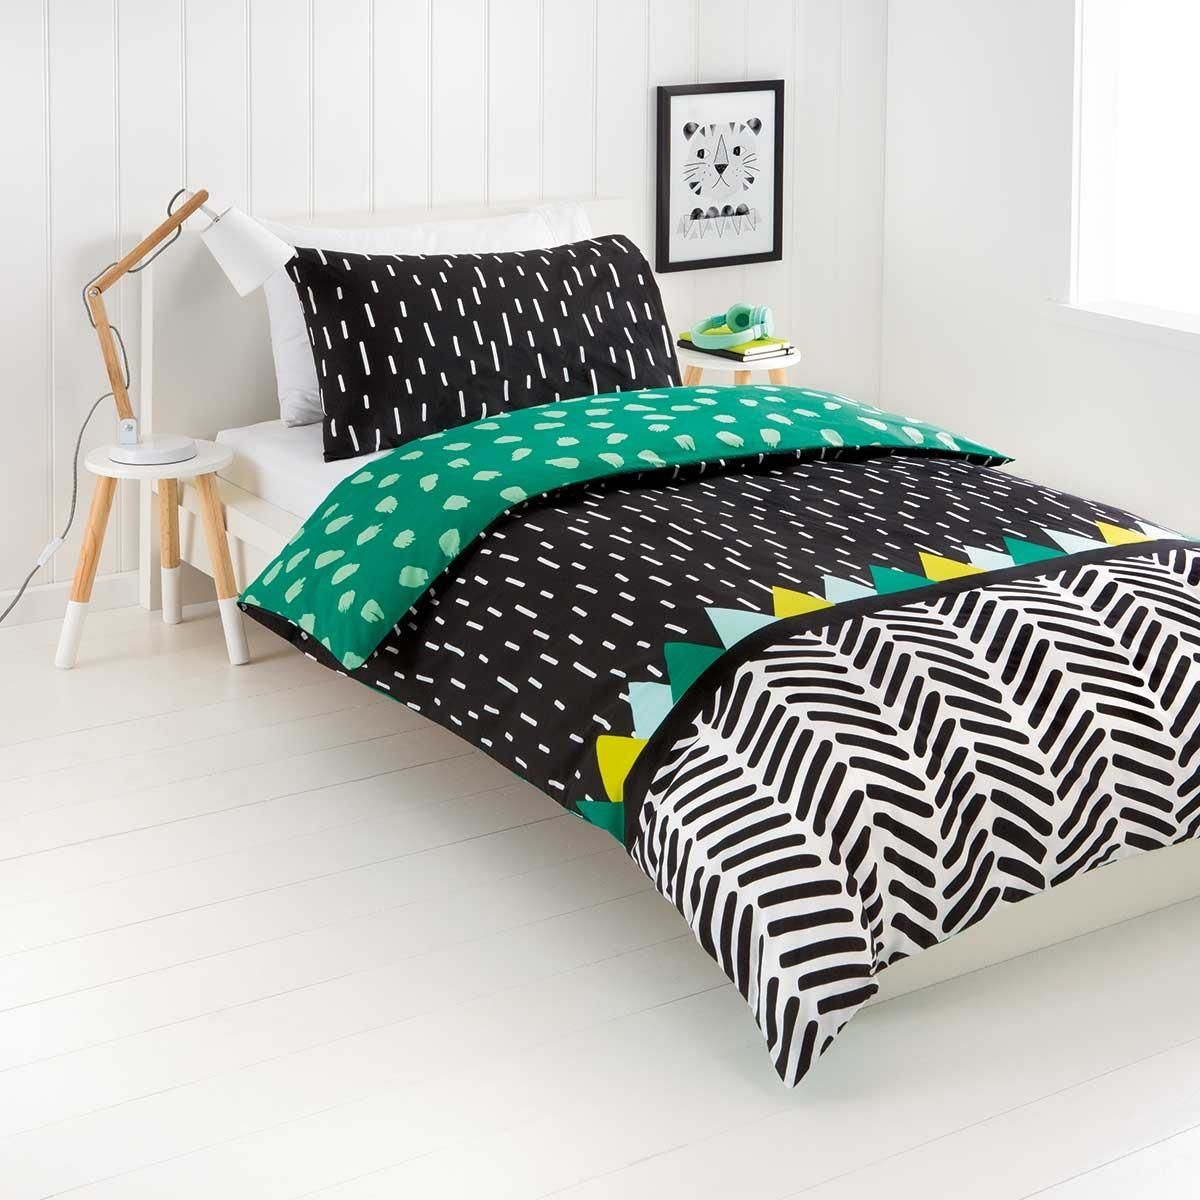 Kids Bedroom Kmart reversible wild thing quilt cover set - double bed | kmart | kids